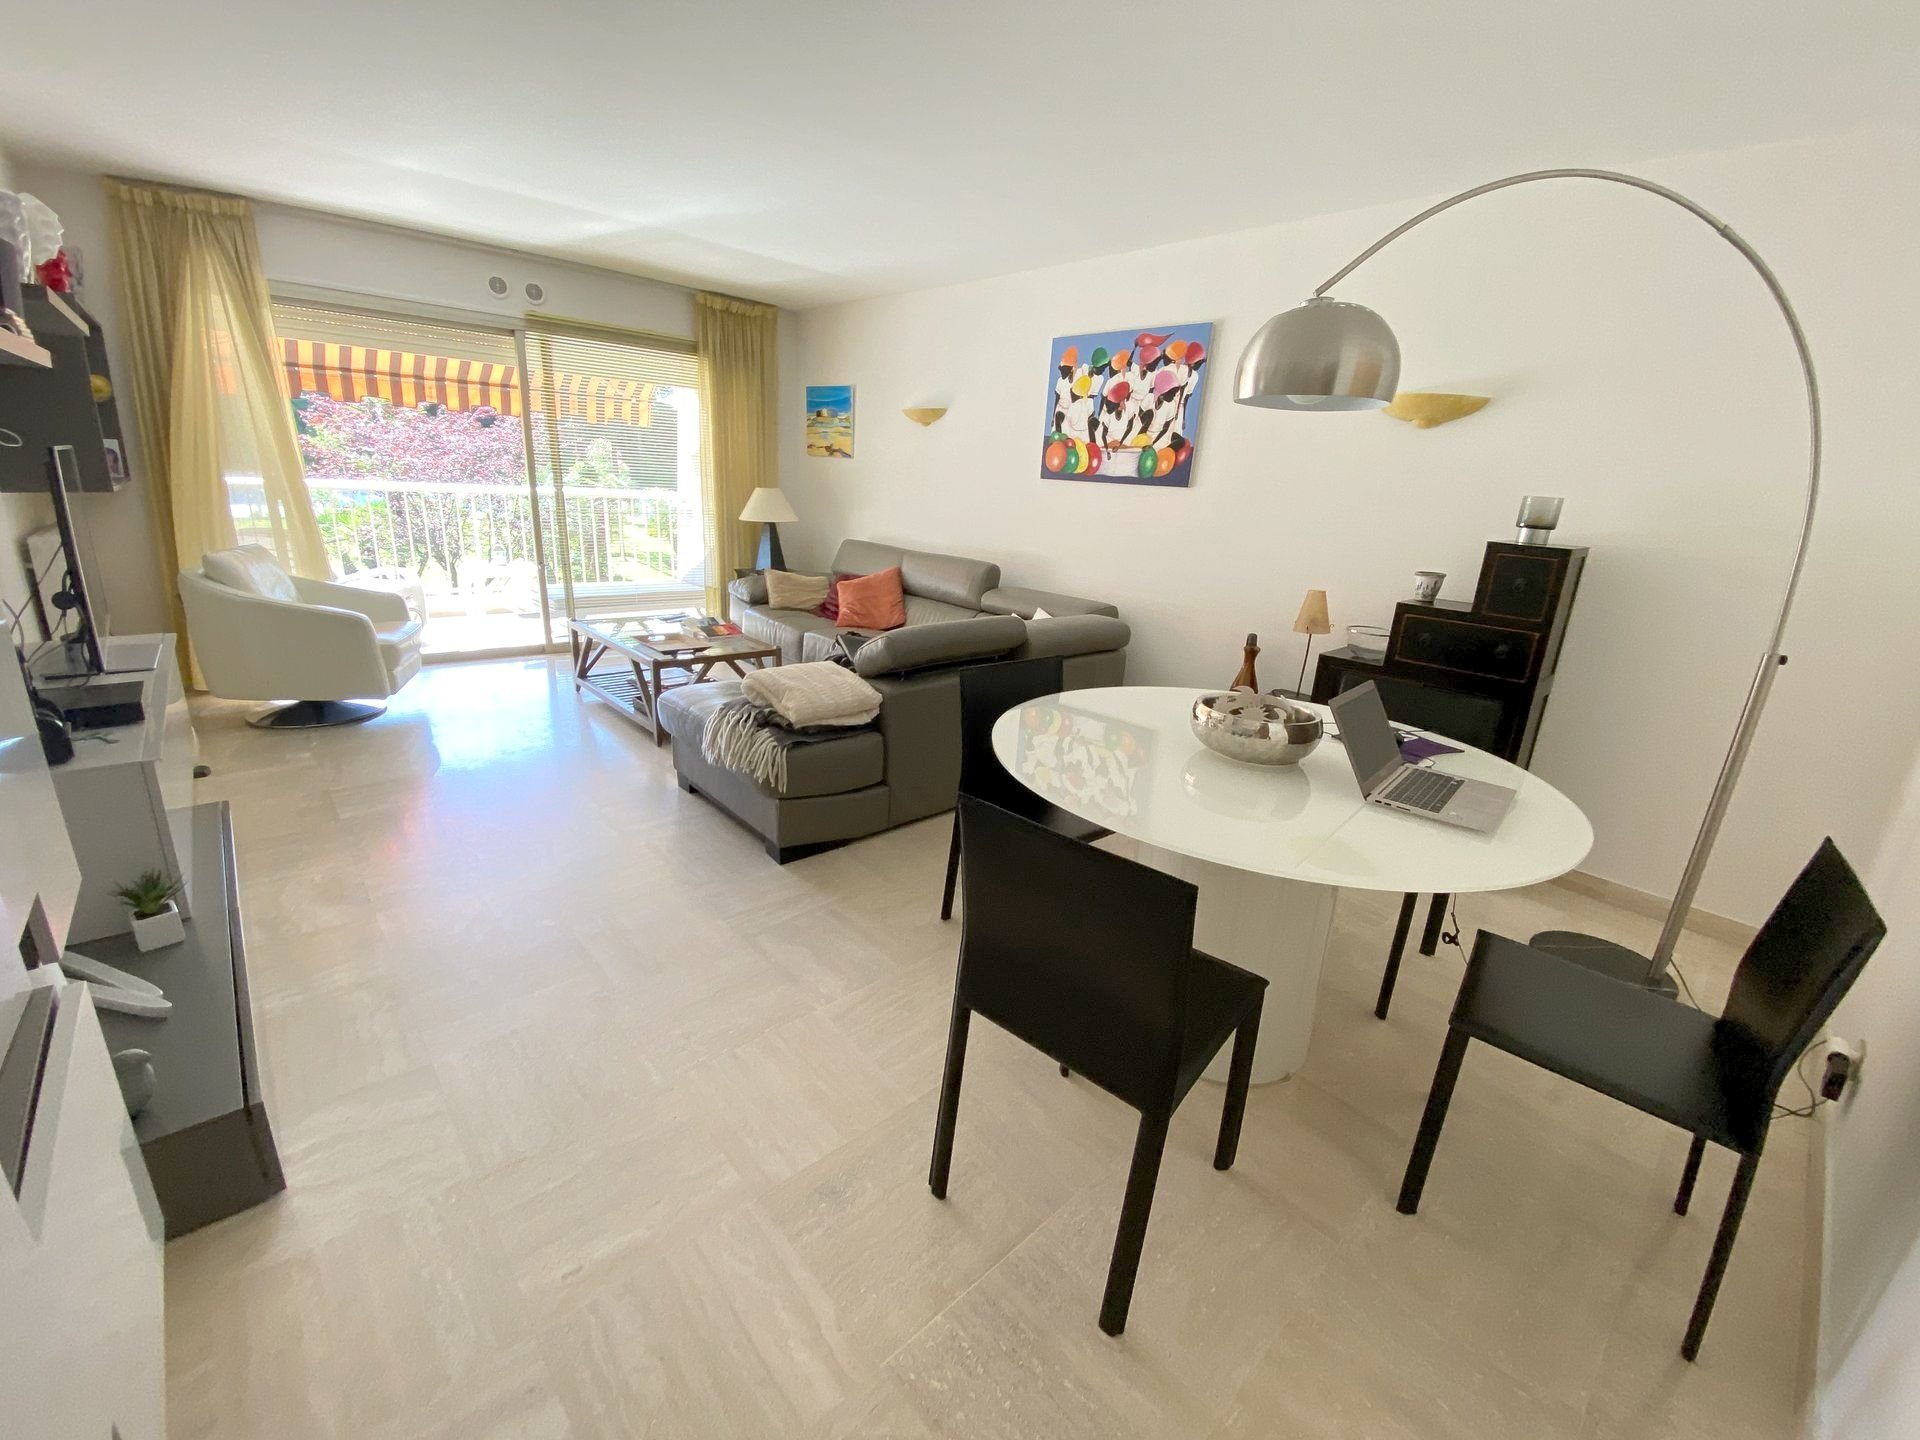 CANNES apartment 2 bedrooms for sale swimming pool